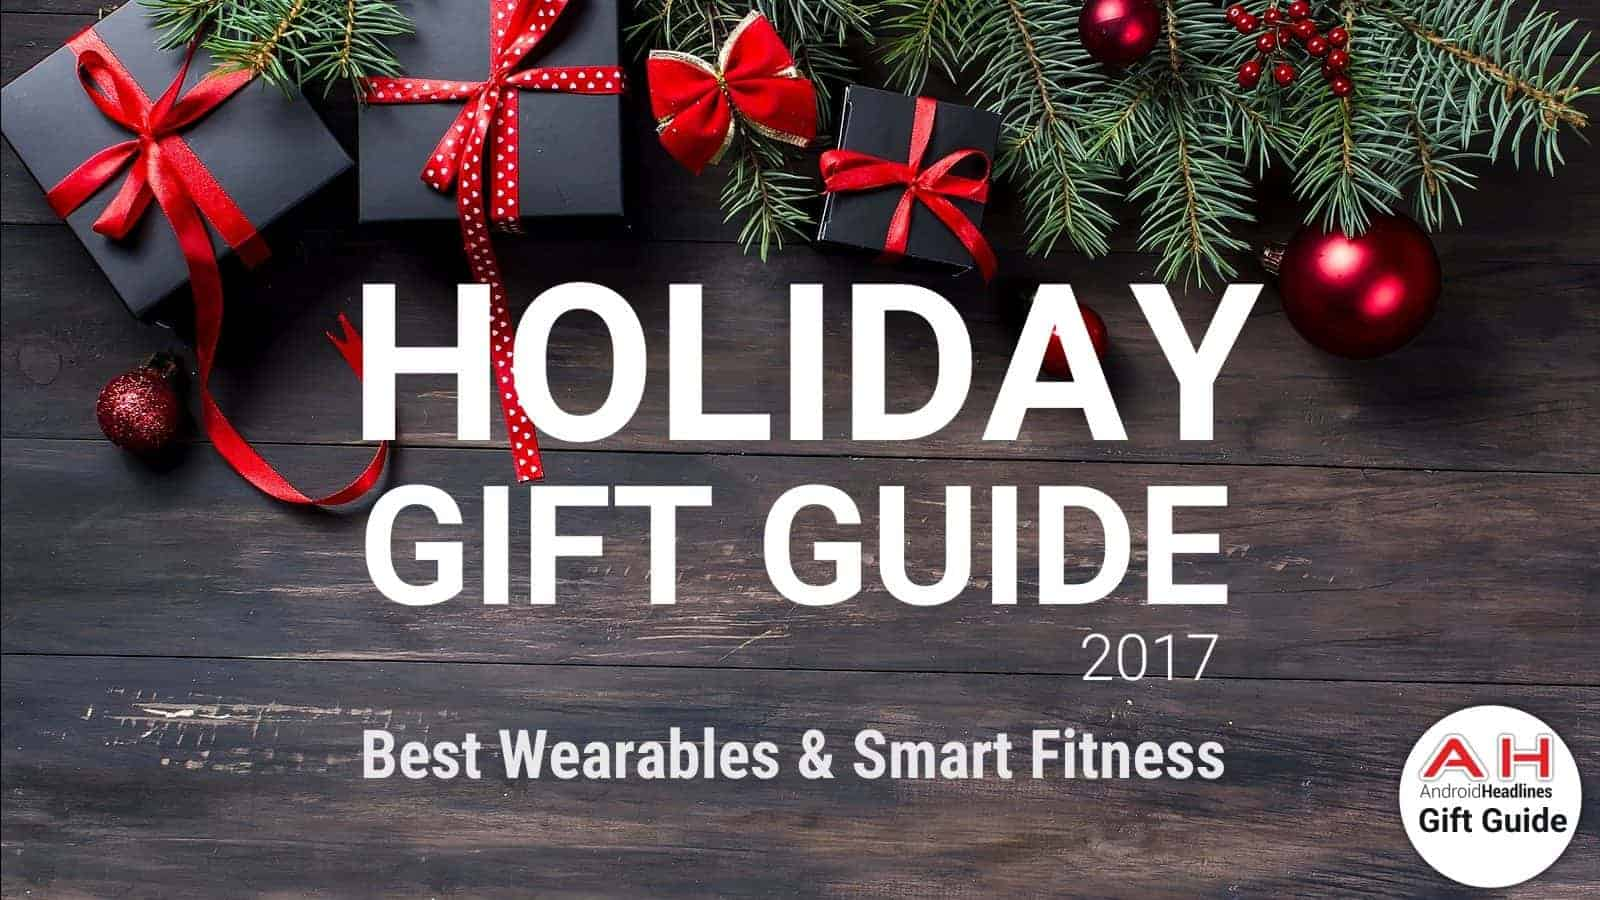 Holiday Gift Guide 2017 2018 Best Wearables Smart Fitness